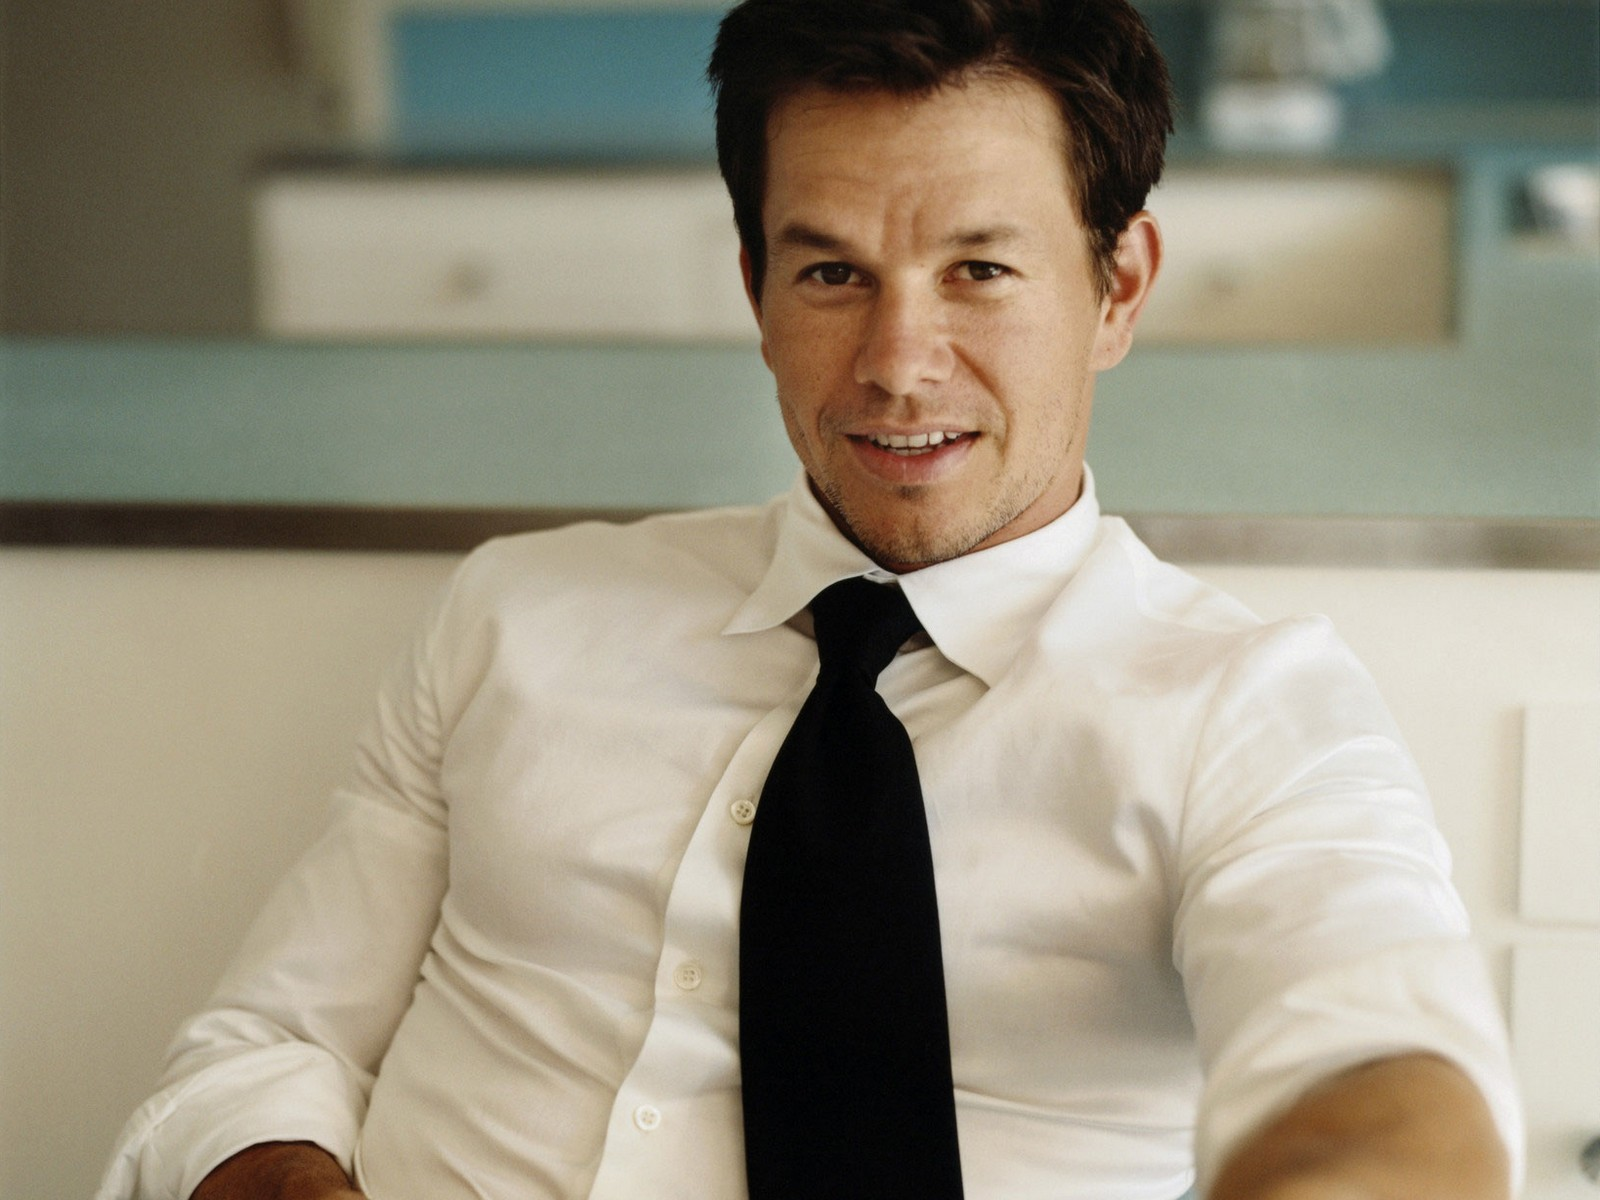 Overview of the many roles and movies of actor Mark Wahlberg